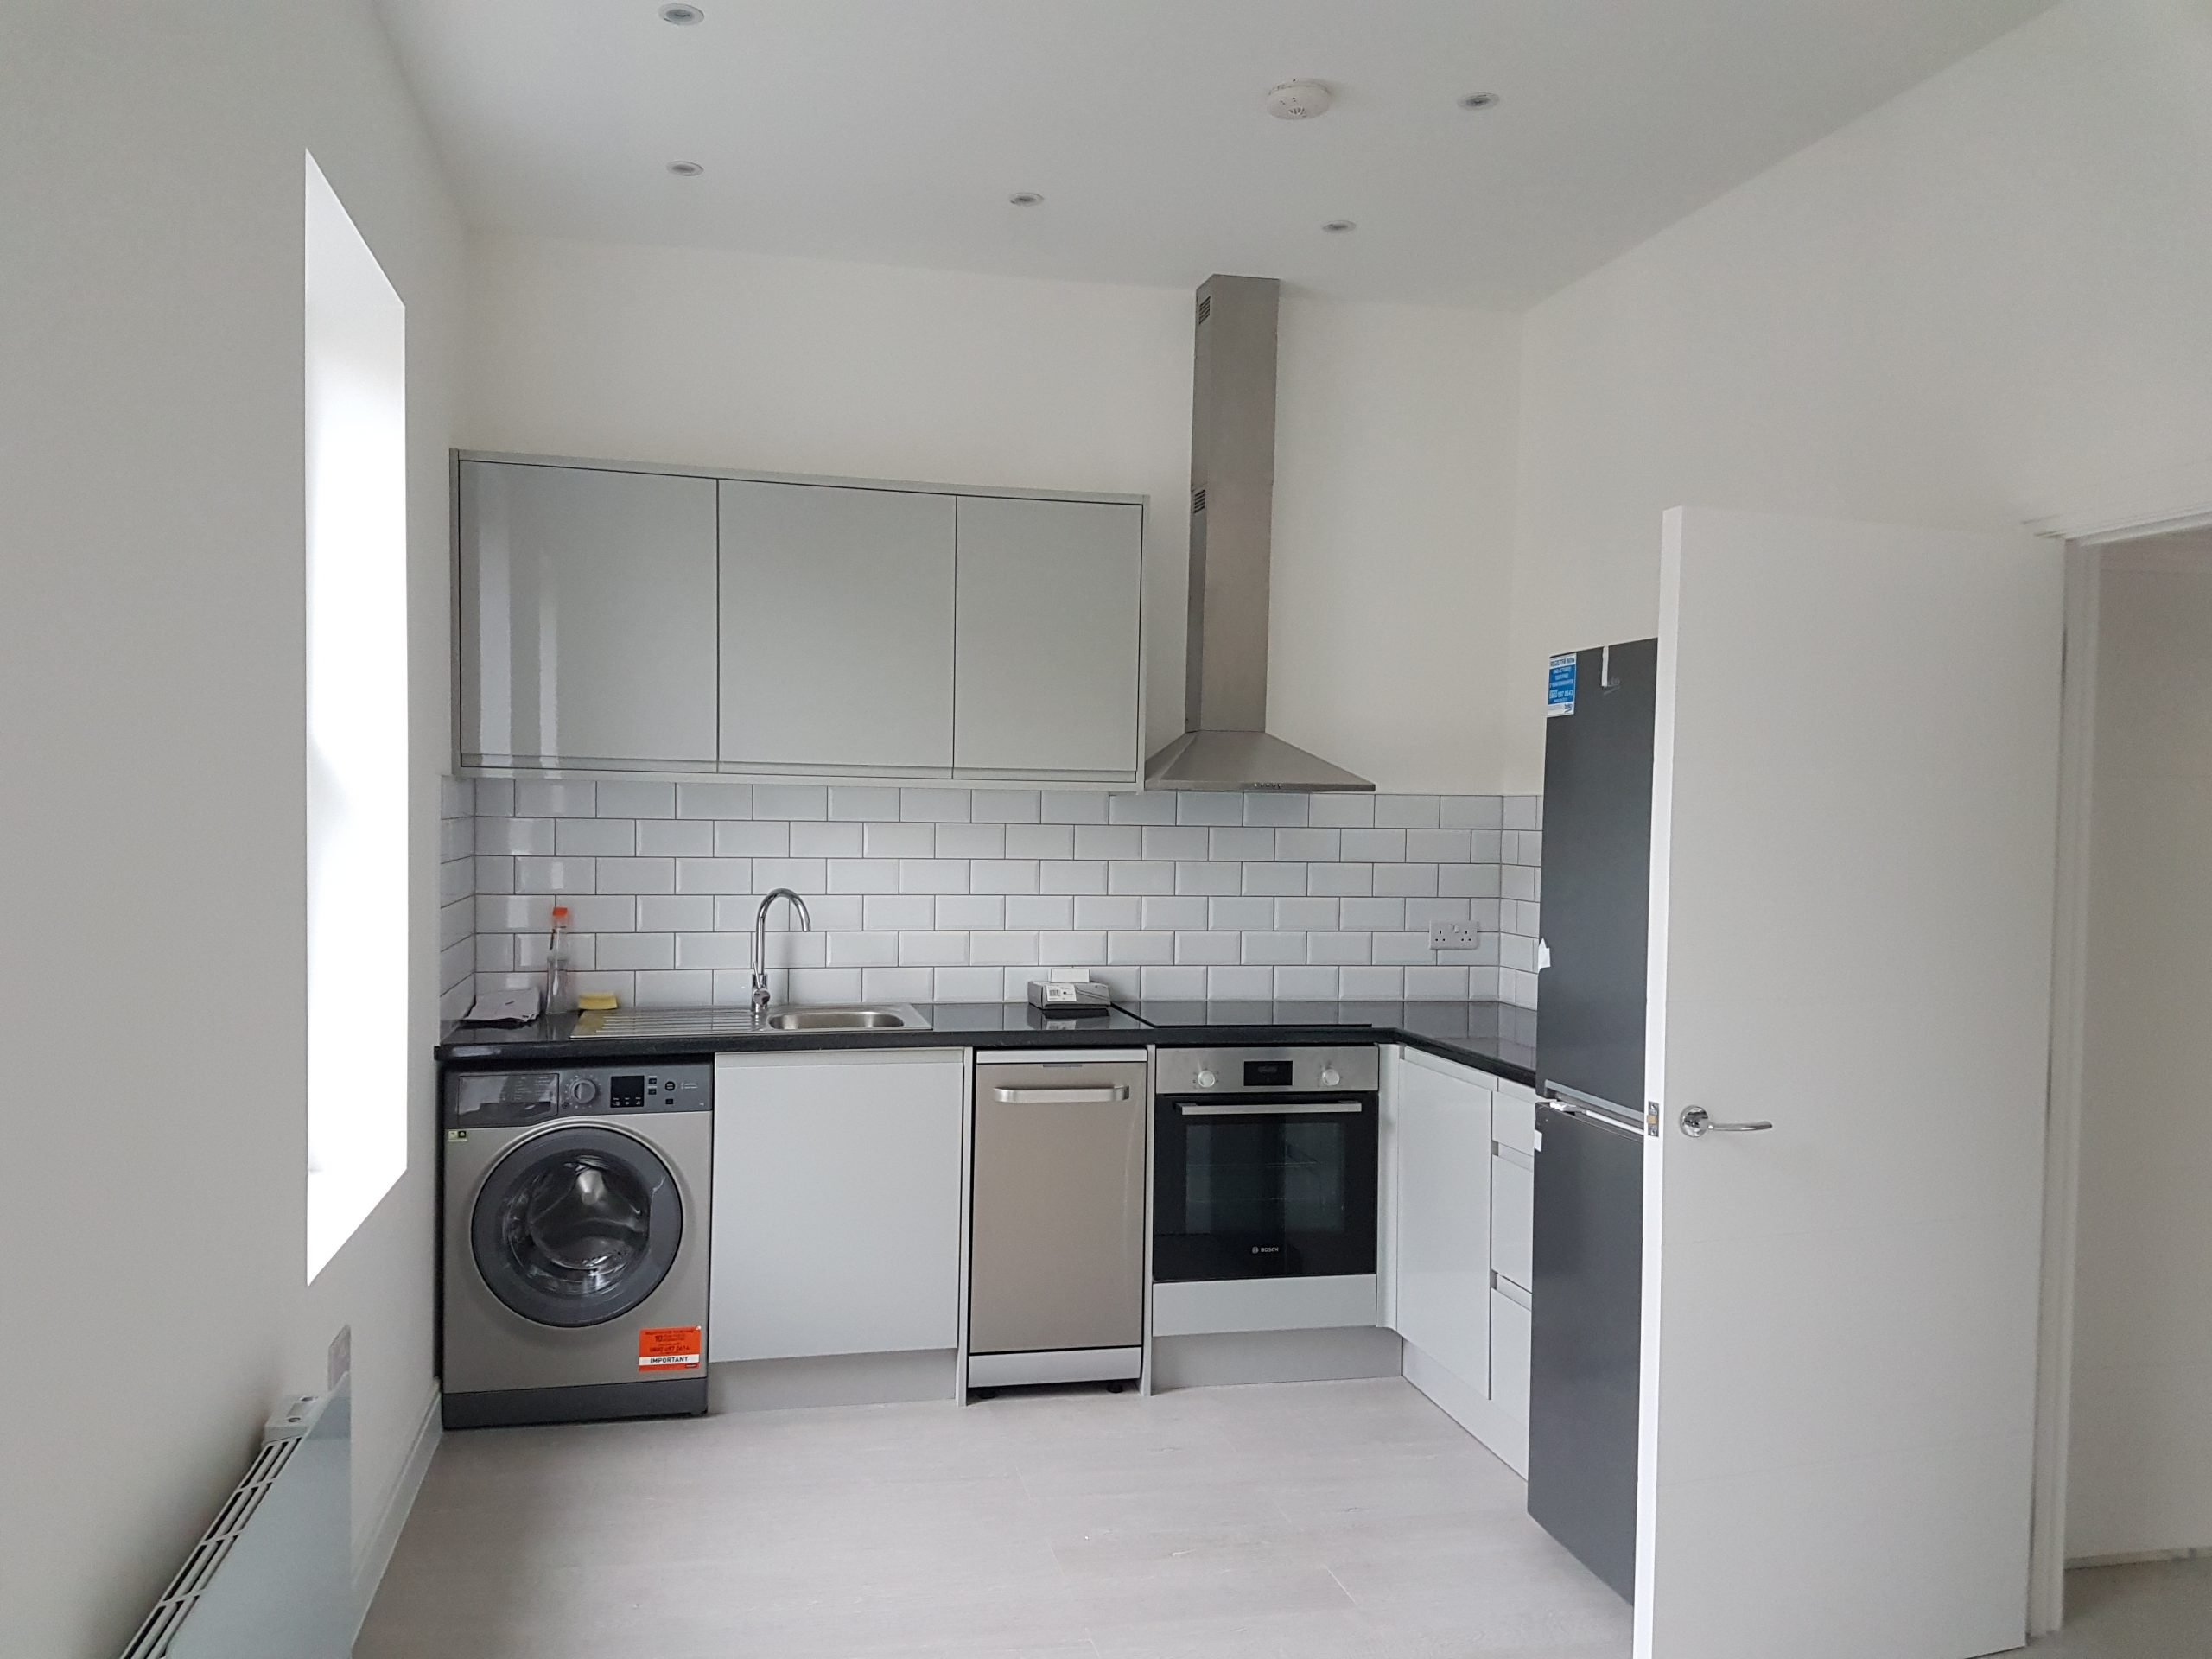 2 Bed Dalston Lane E8 1NH